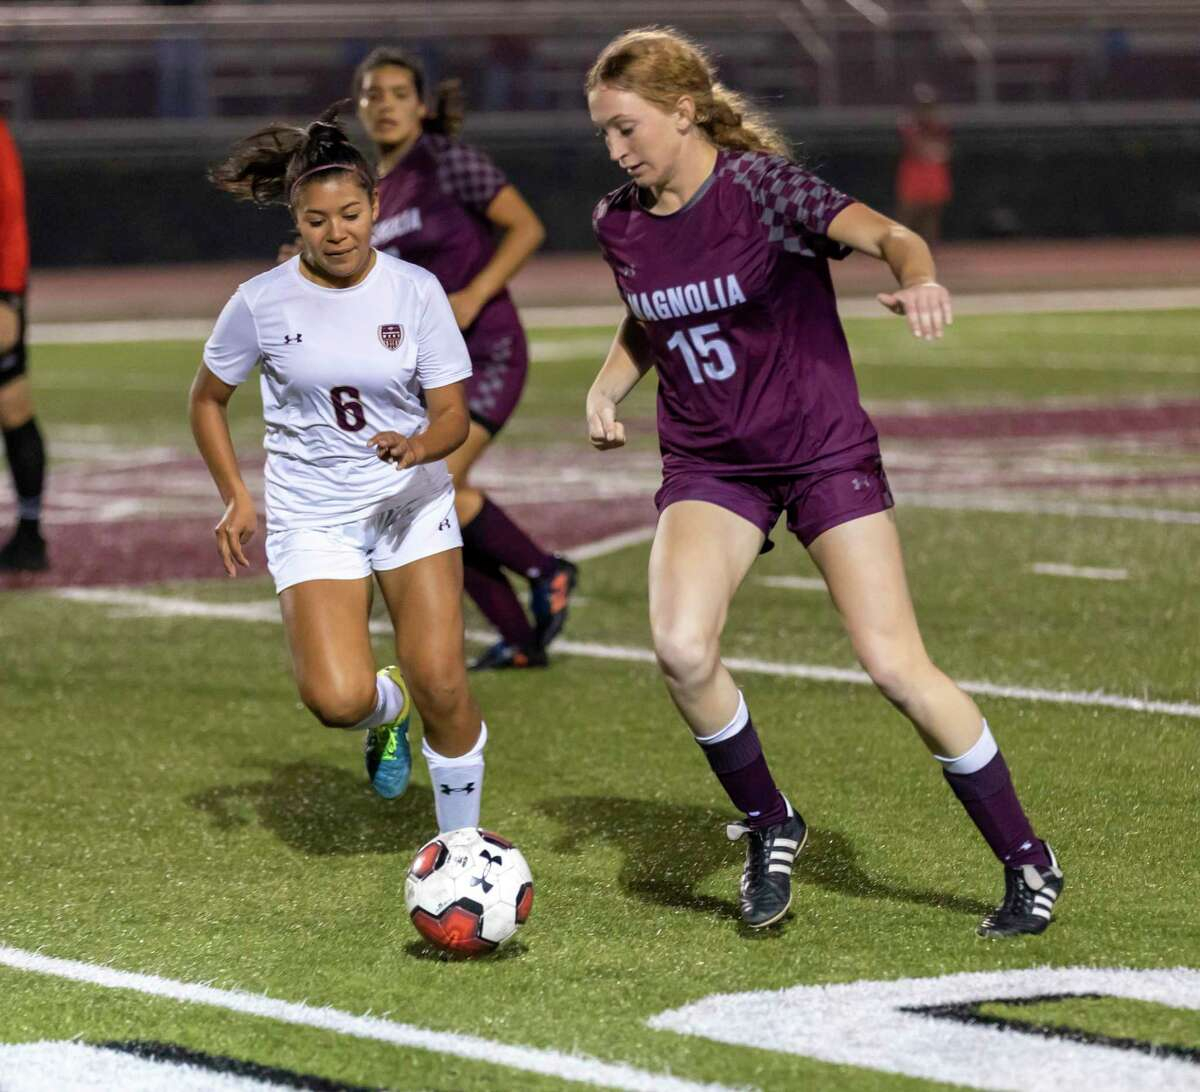 Magnolia defender Skylar Replogle (15) is one of the top returning players for the Lady Bulldogs.